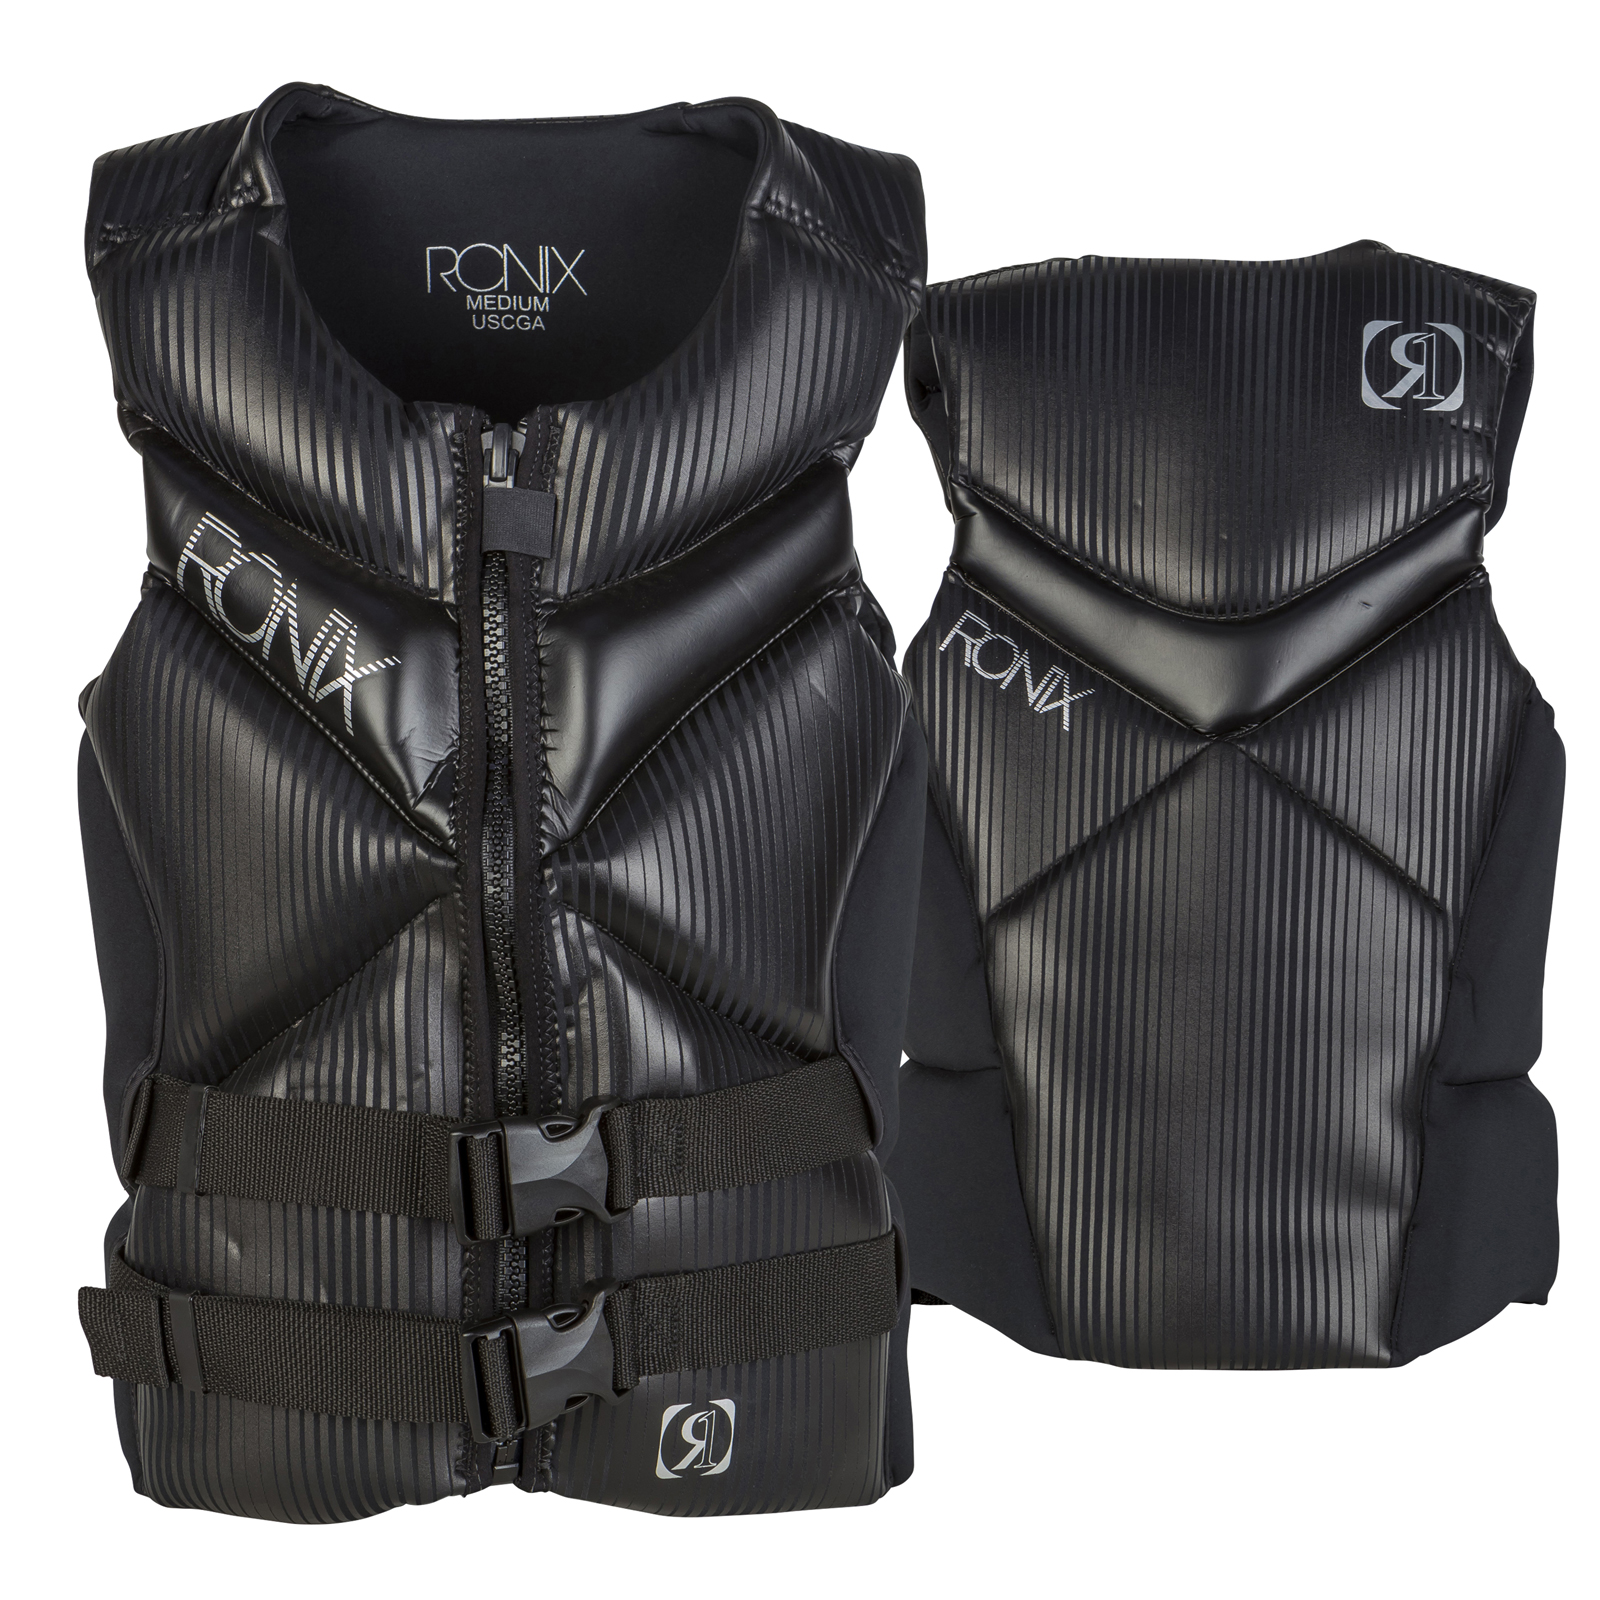 PULSE CAPELLA VEST BLACK RONIX 2017